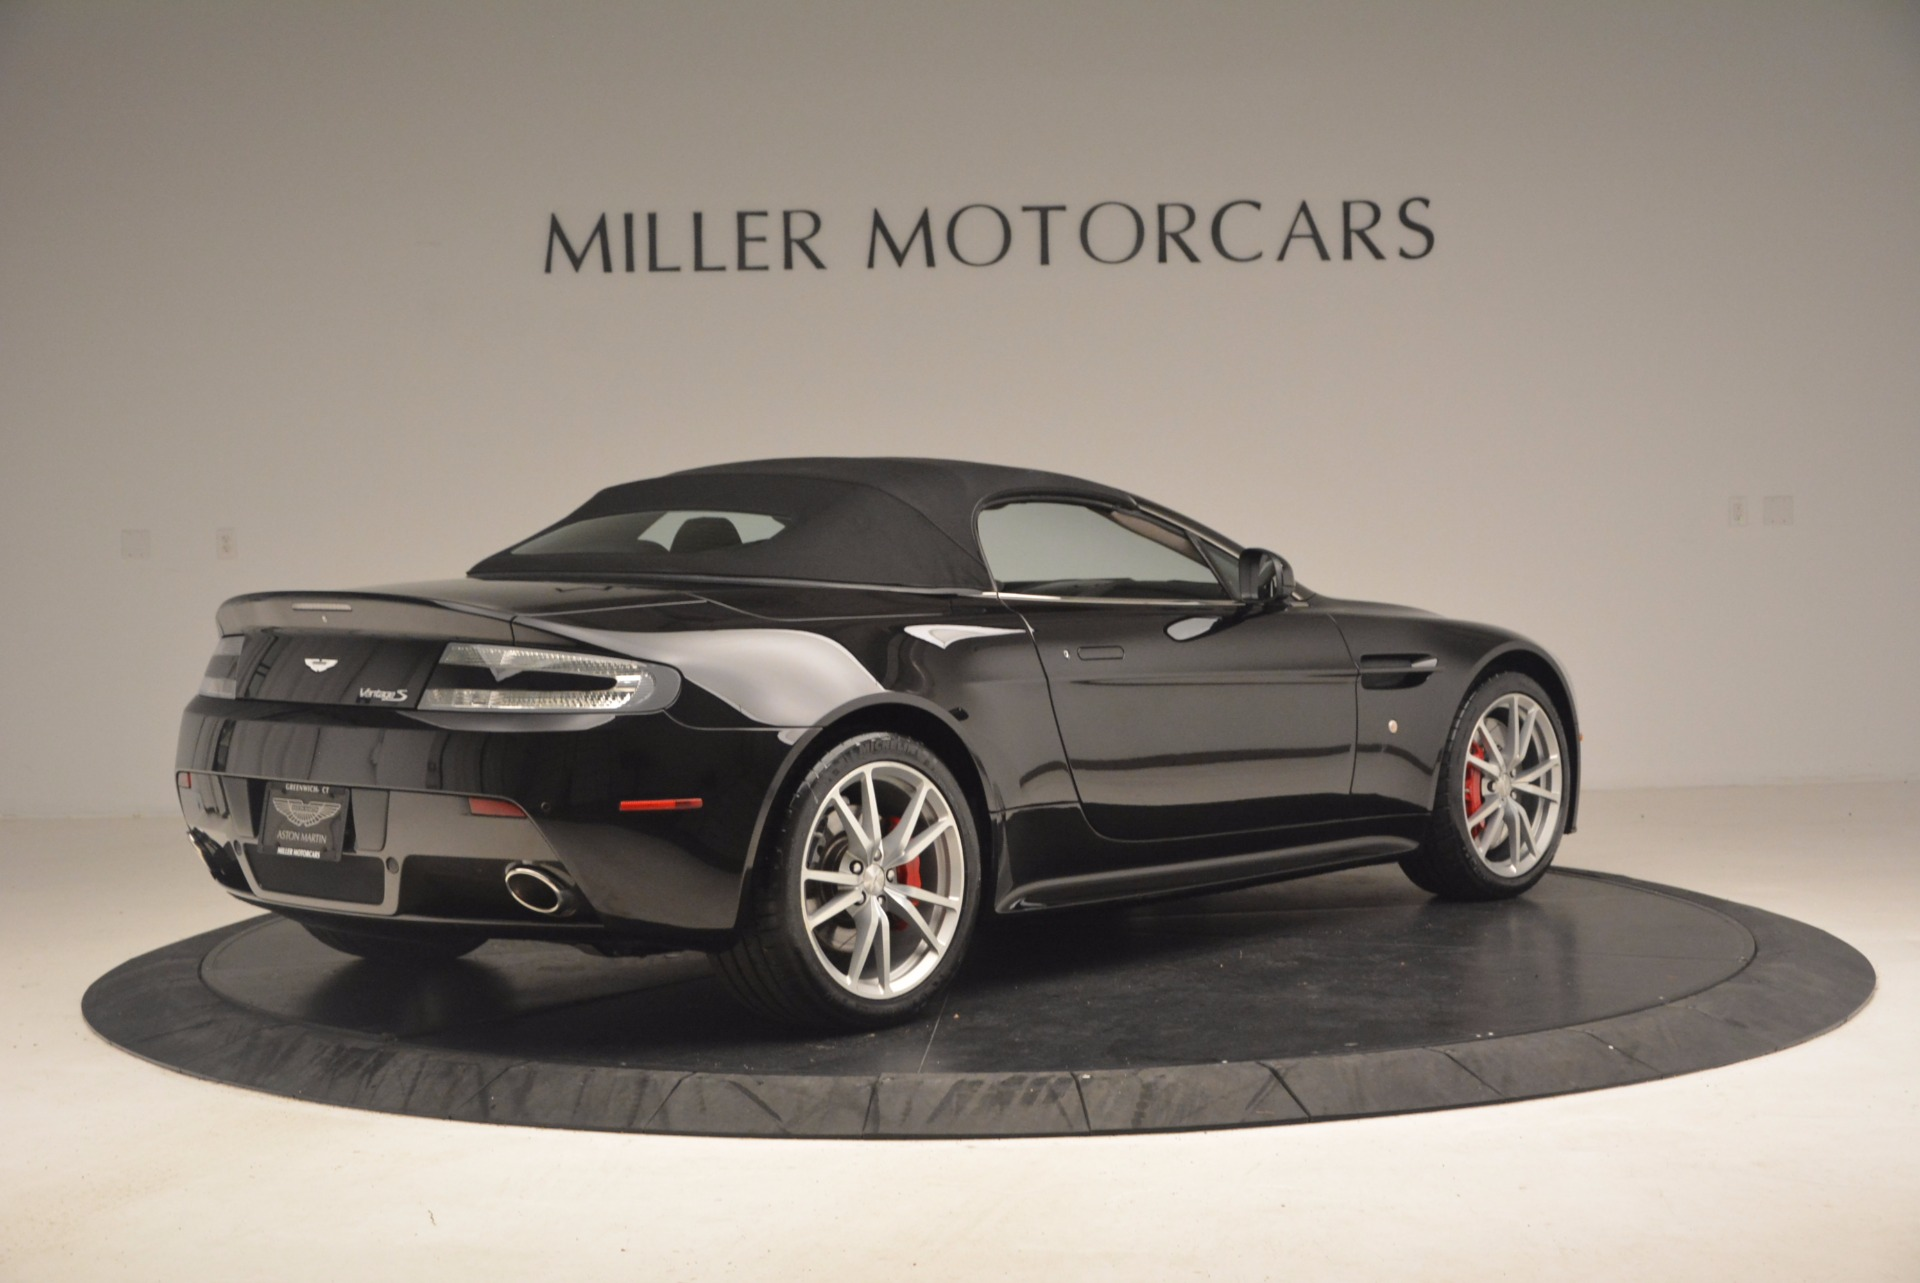 Used 2012 Aston Martin V8 Vantage S Roadster For Sale In Westport, CT 1181_p20